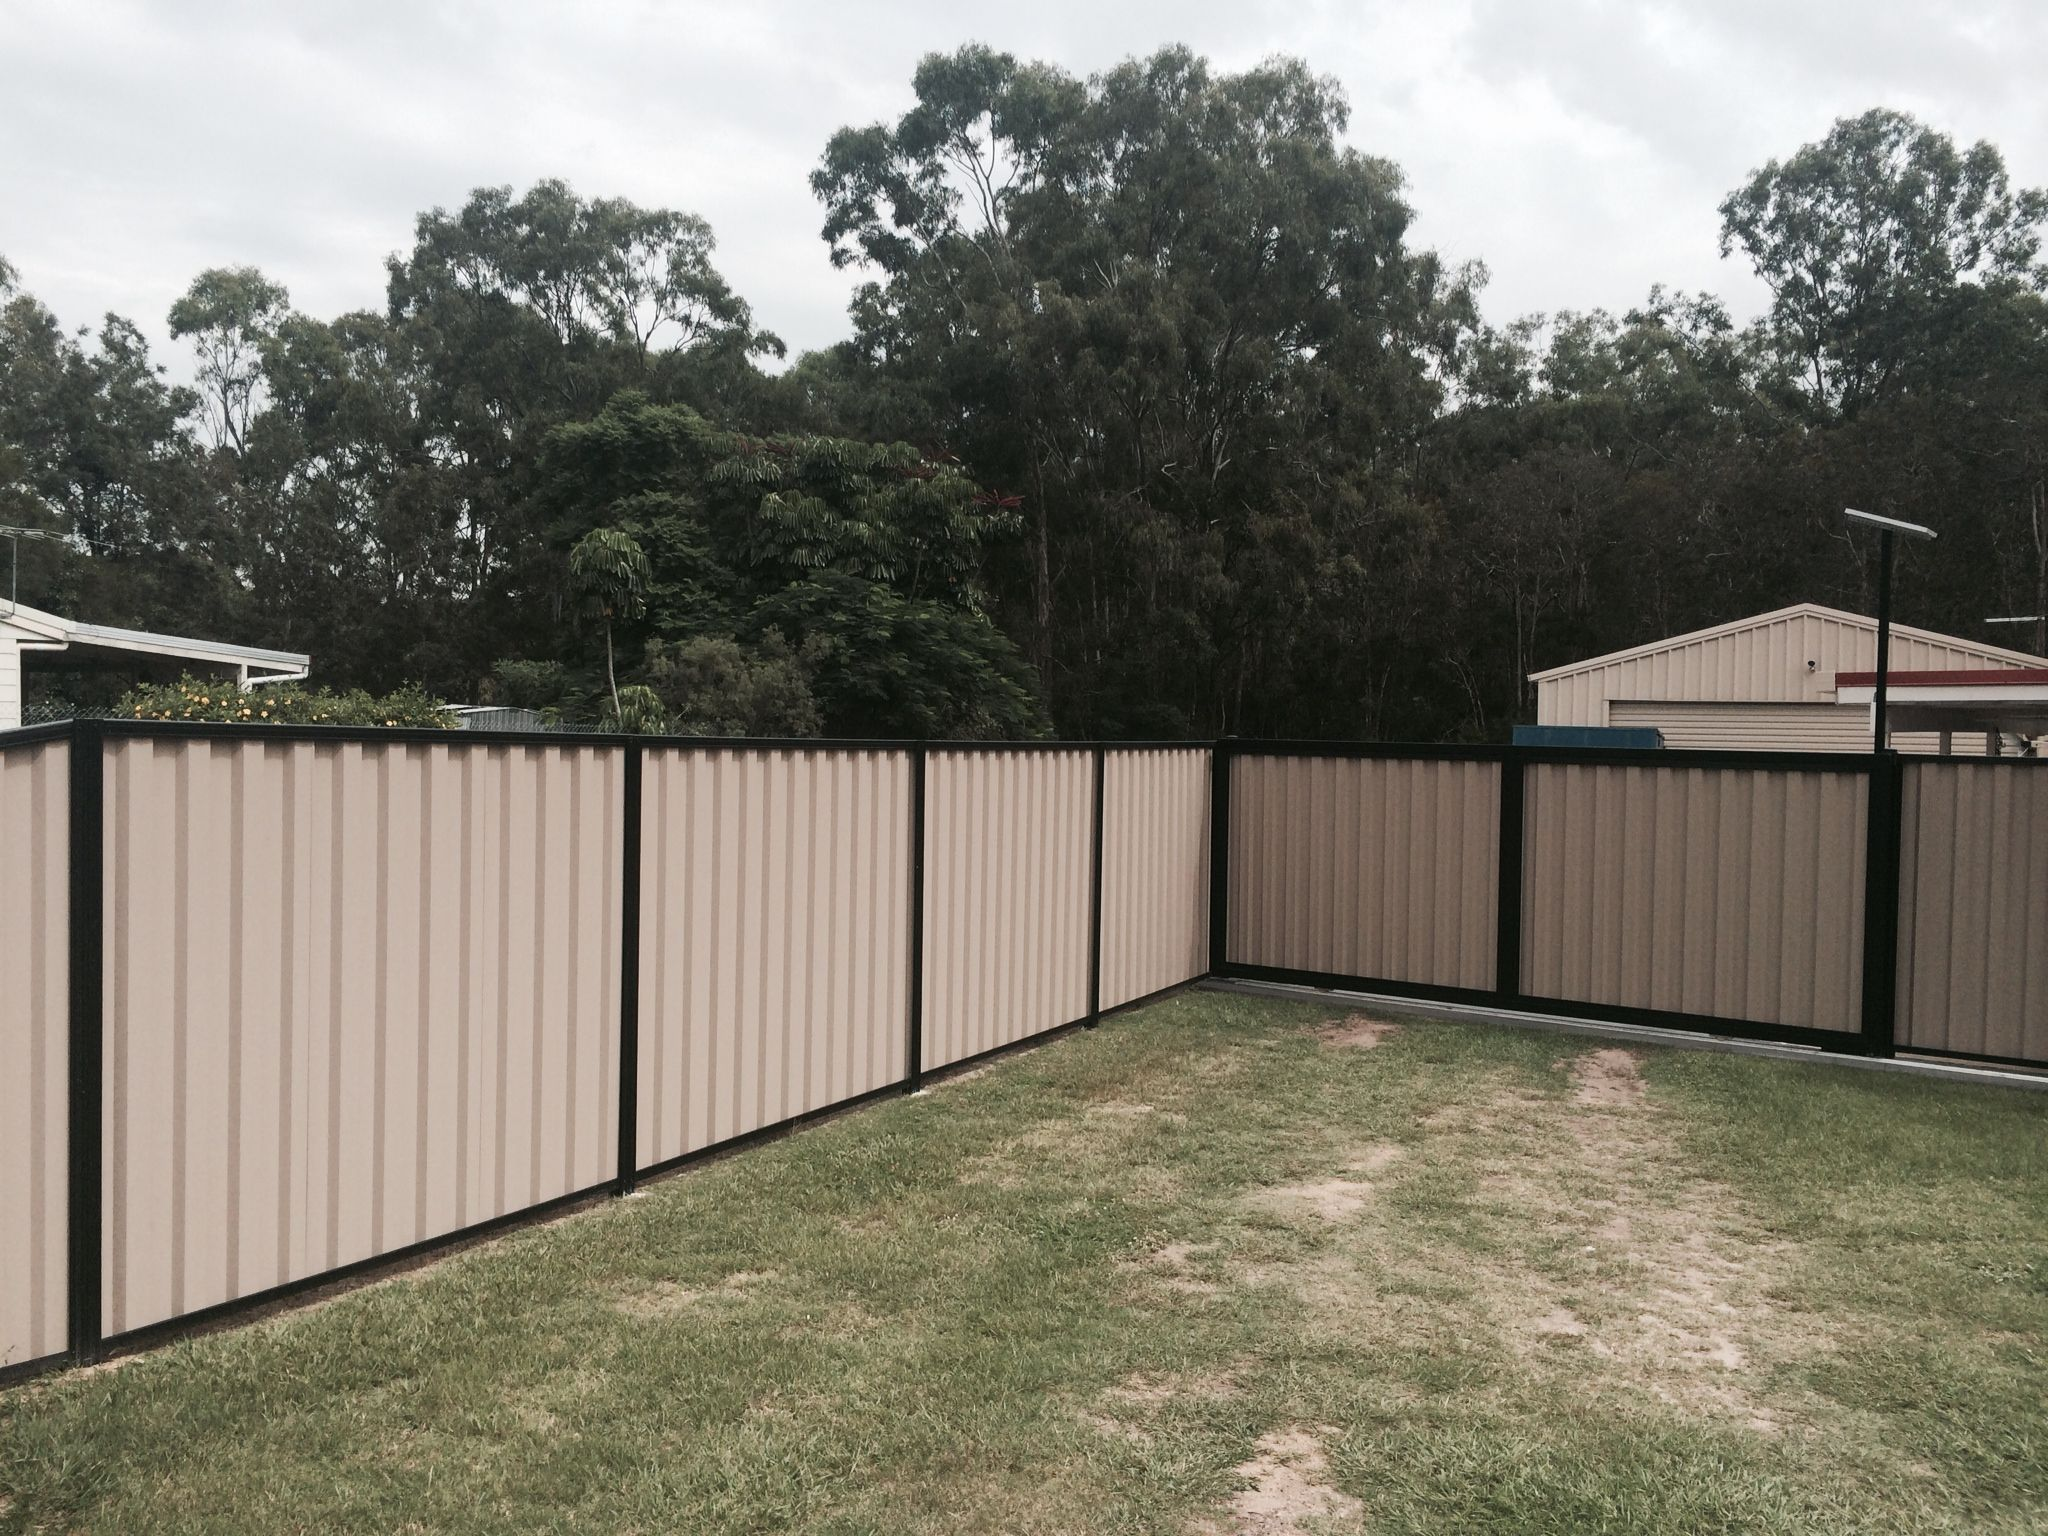 Colorbond sheets brisbane - Colourbond Fence With Black Post Rails And Terrace Sheets